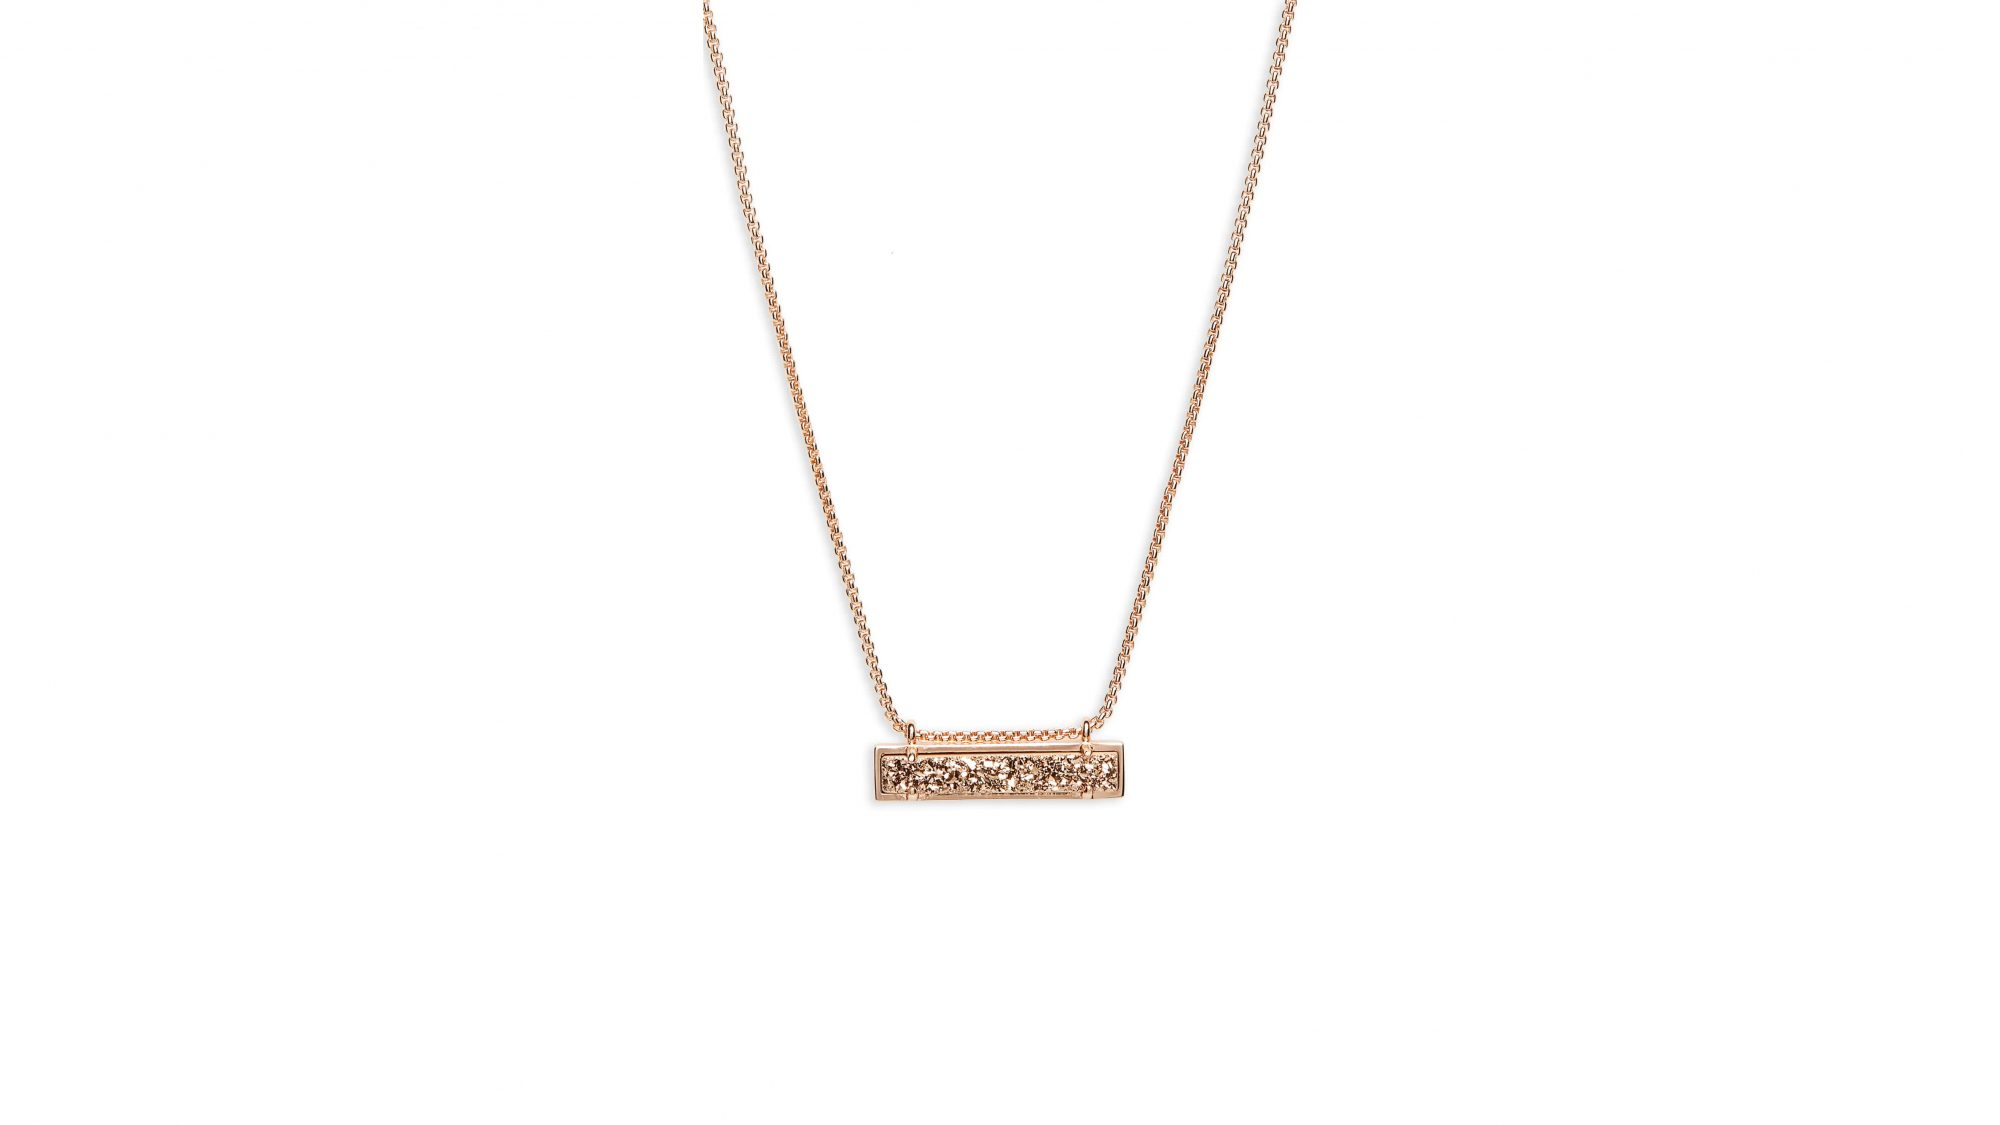 Kendra Scott Leonor Pendant Necklace